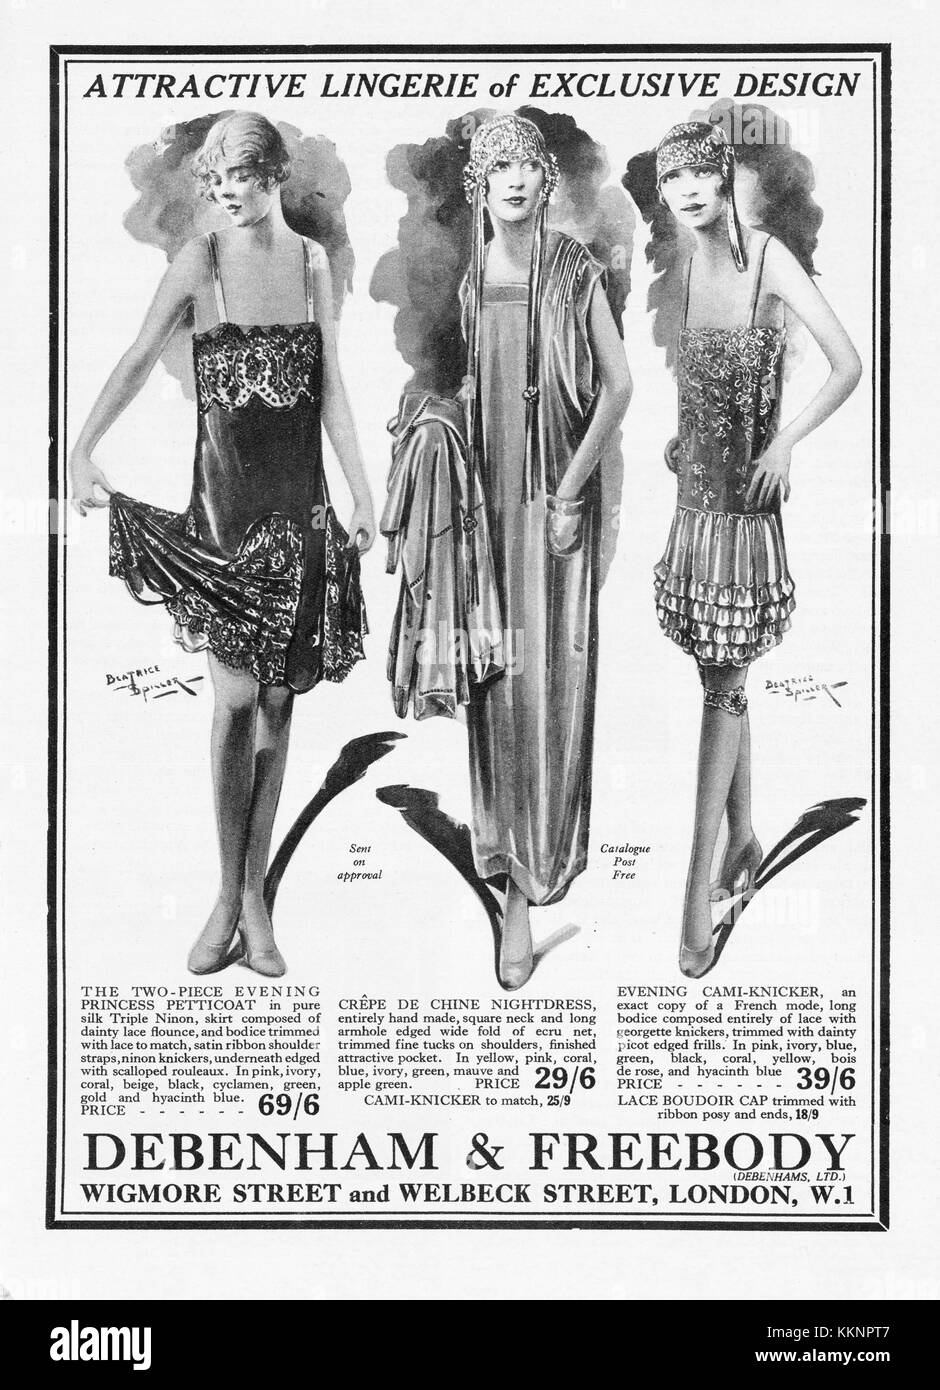 1926 UK Magazine Debenham & Freebody Ladies Fashions Advert - Stock Image